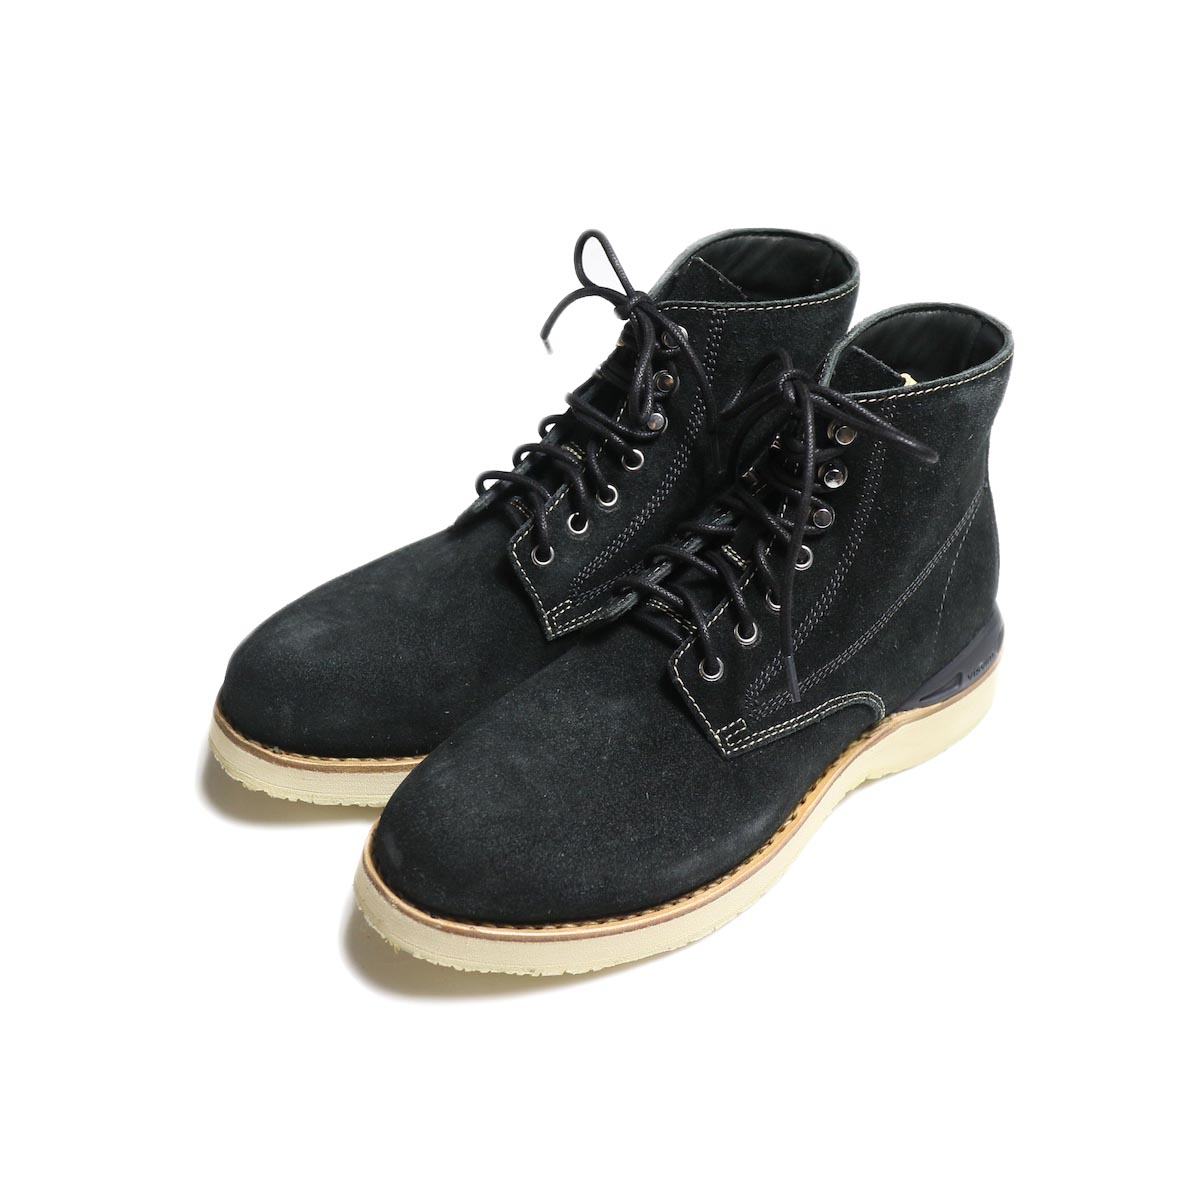 visvim / VIRGIL BOOTS-FOLK (Black)